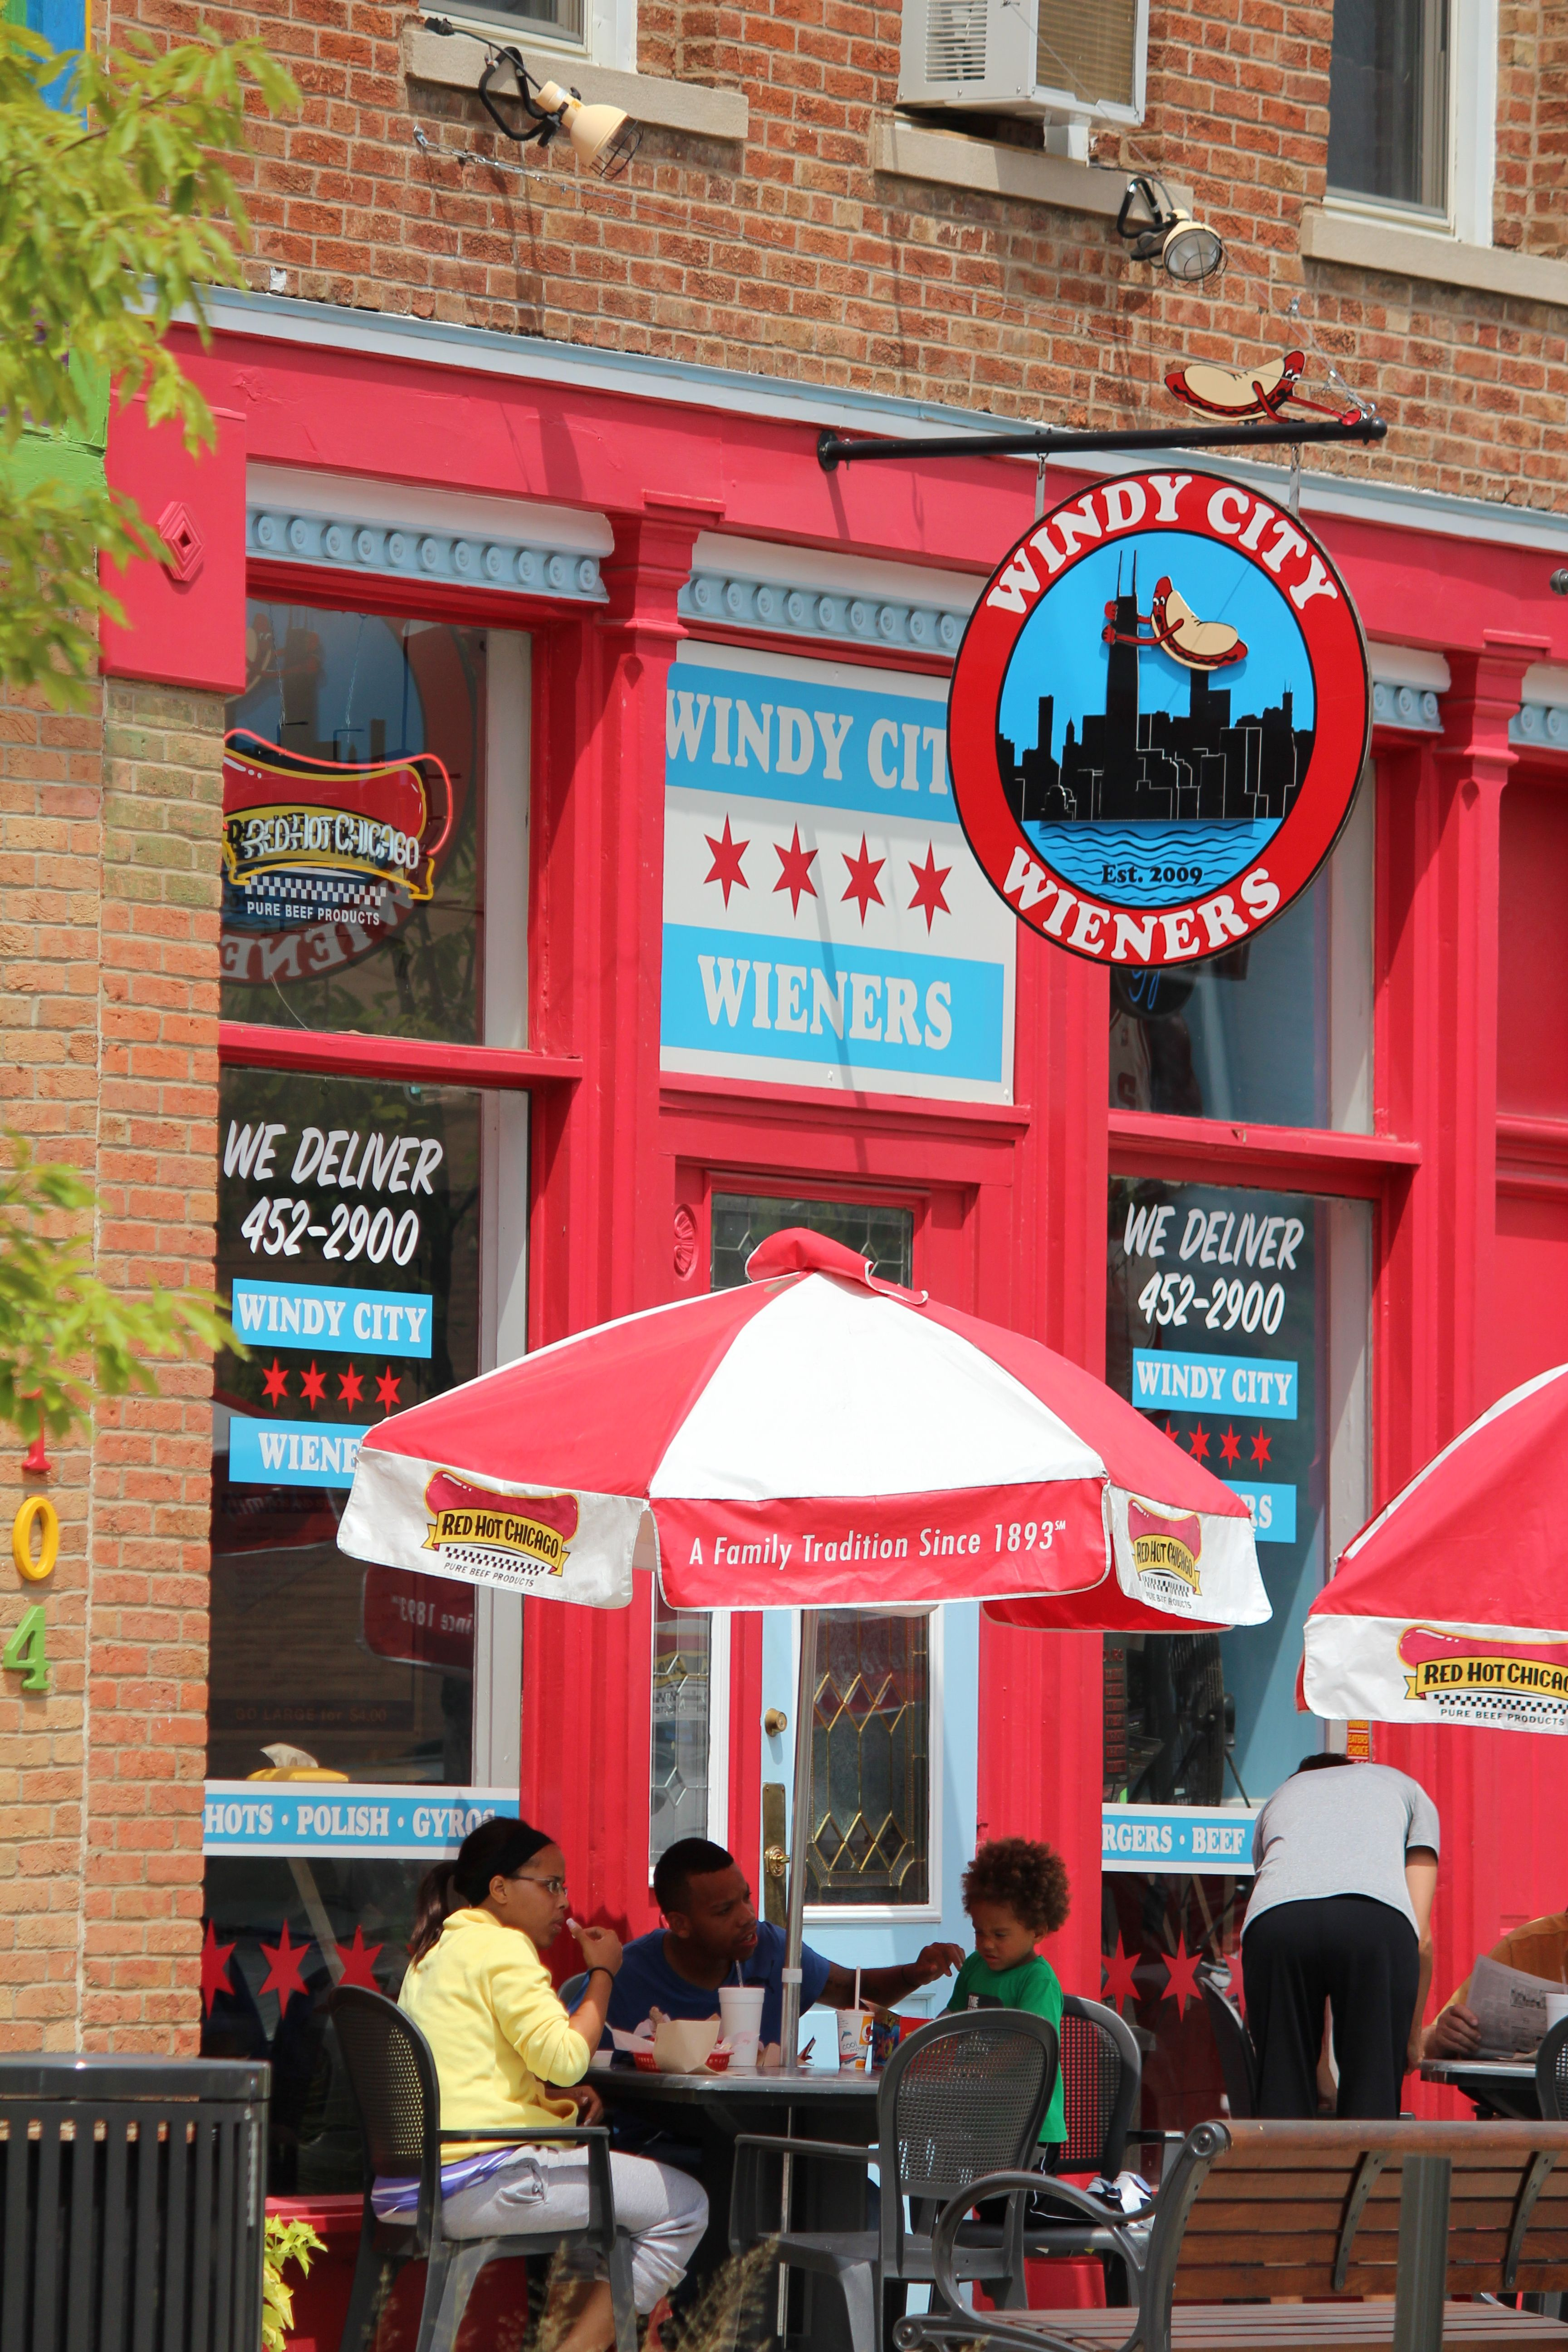 Windy City Wieners Windy City Family Traditions City